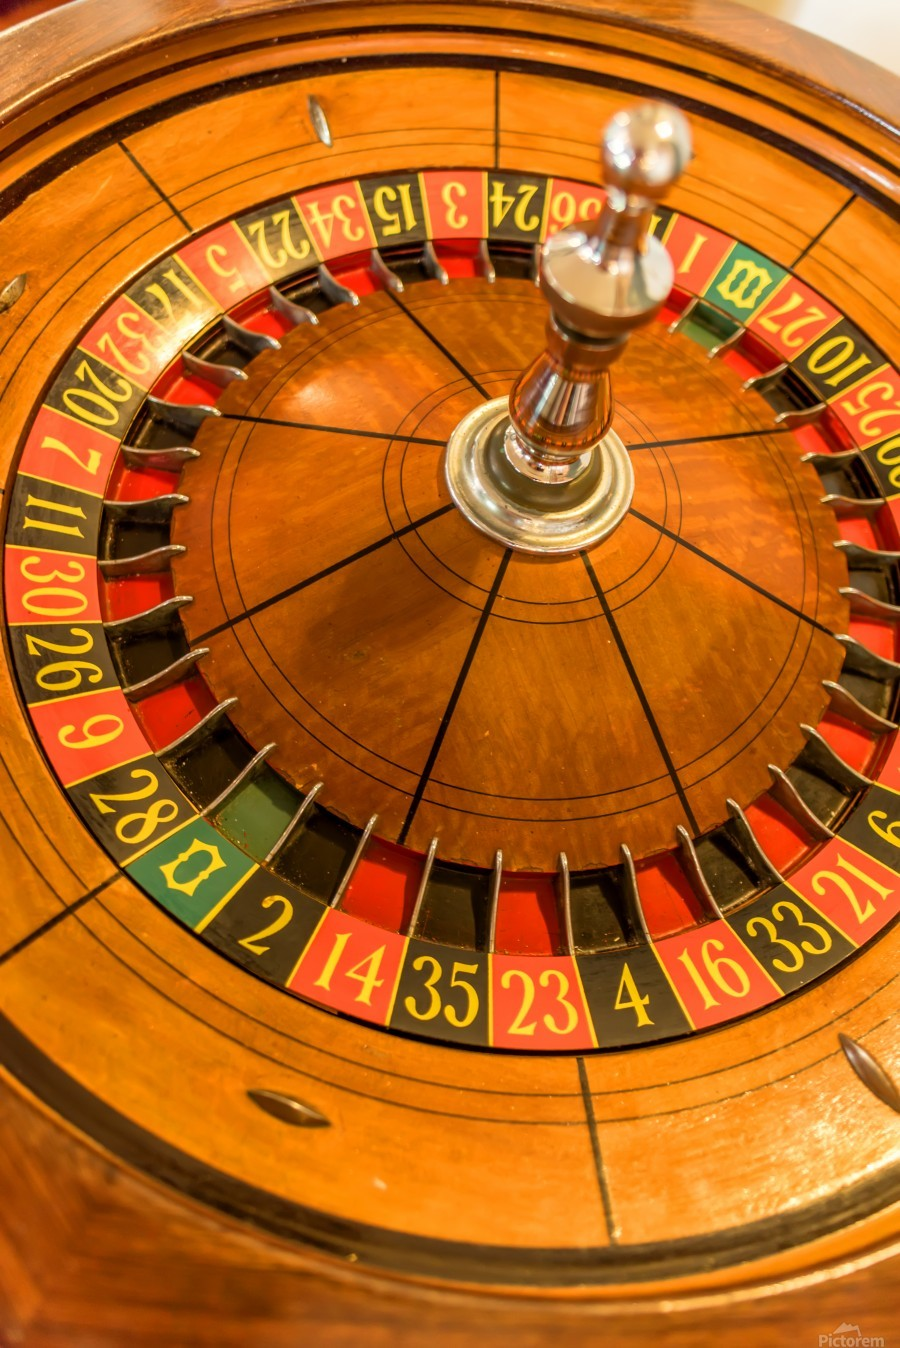 Round, wooden roulette wheel with numbers around the wheel  Print